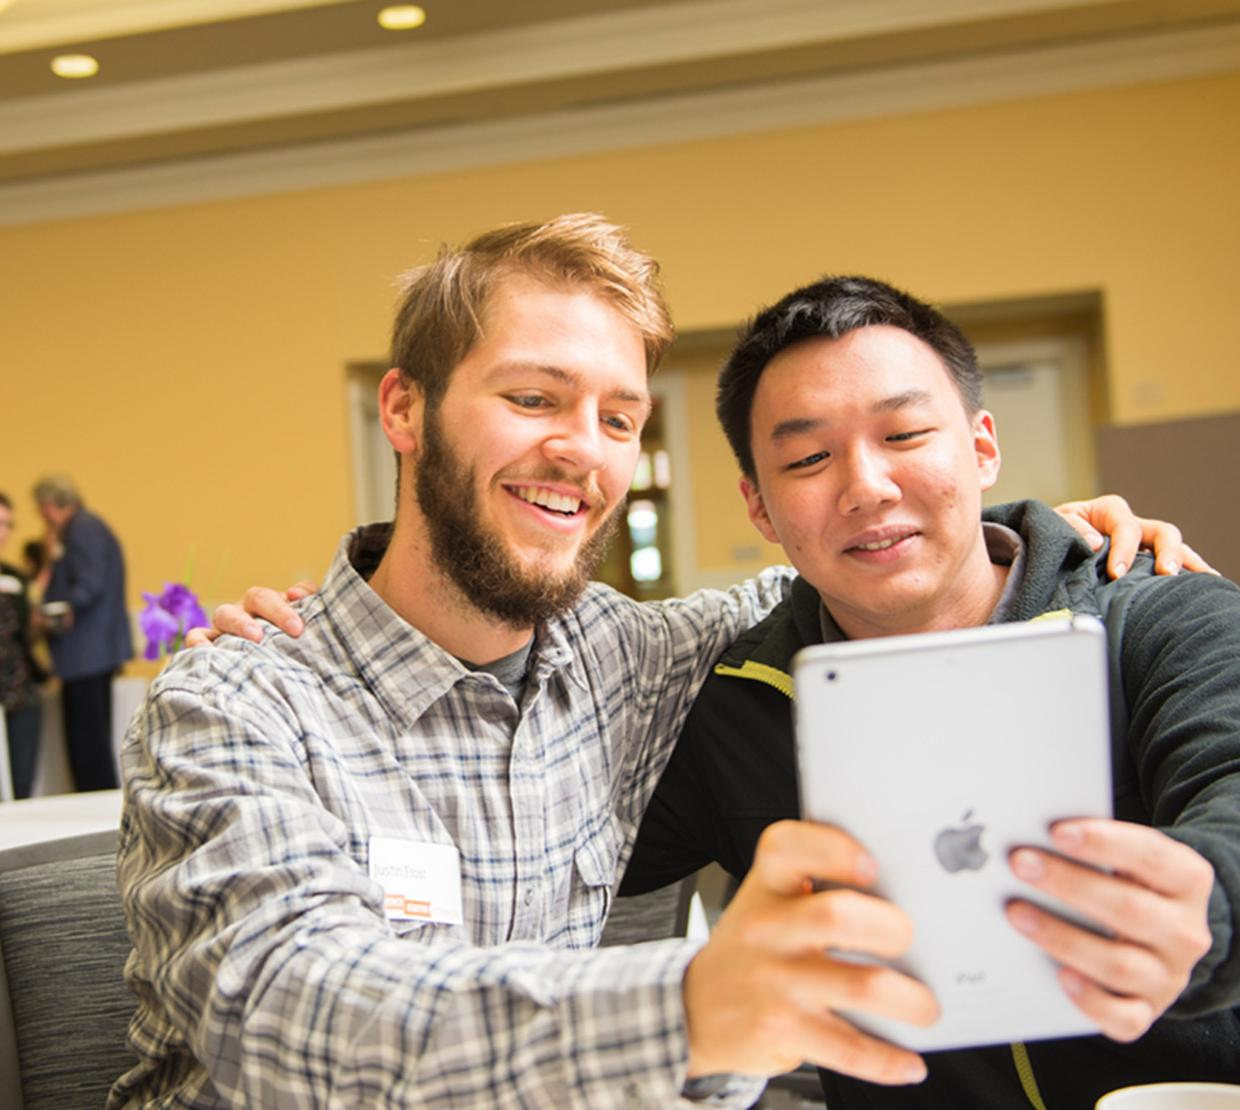 Justin Frost and colleague taking selfie on iPad